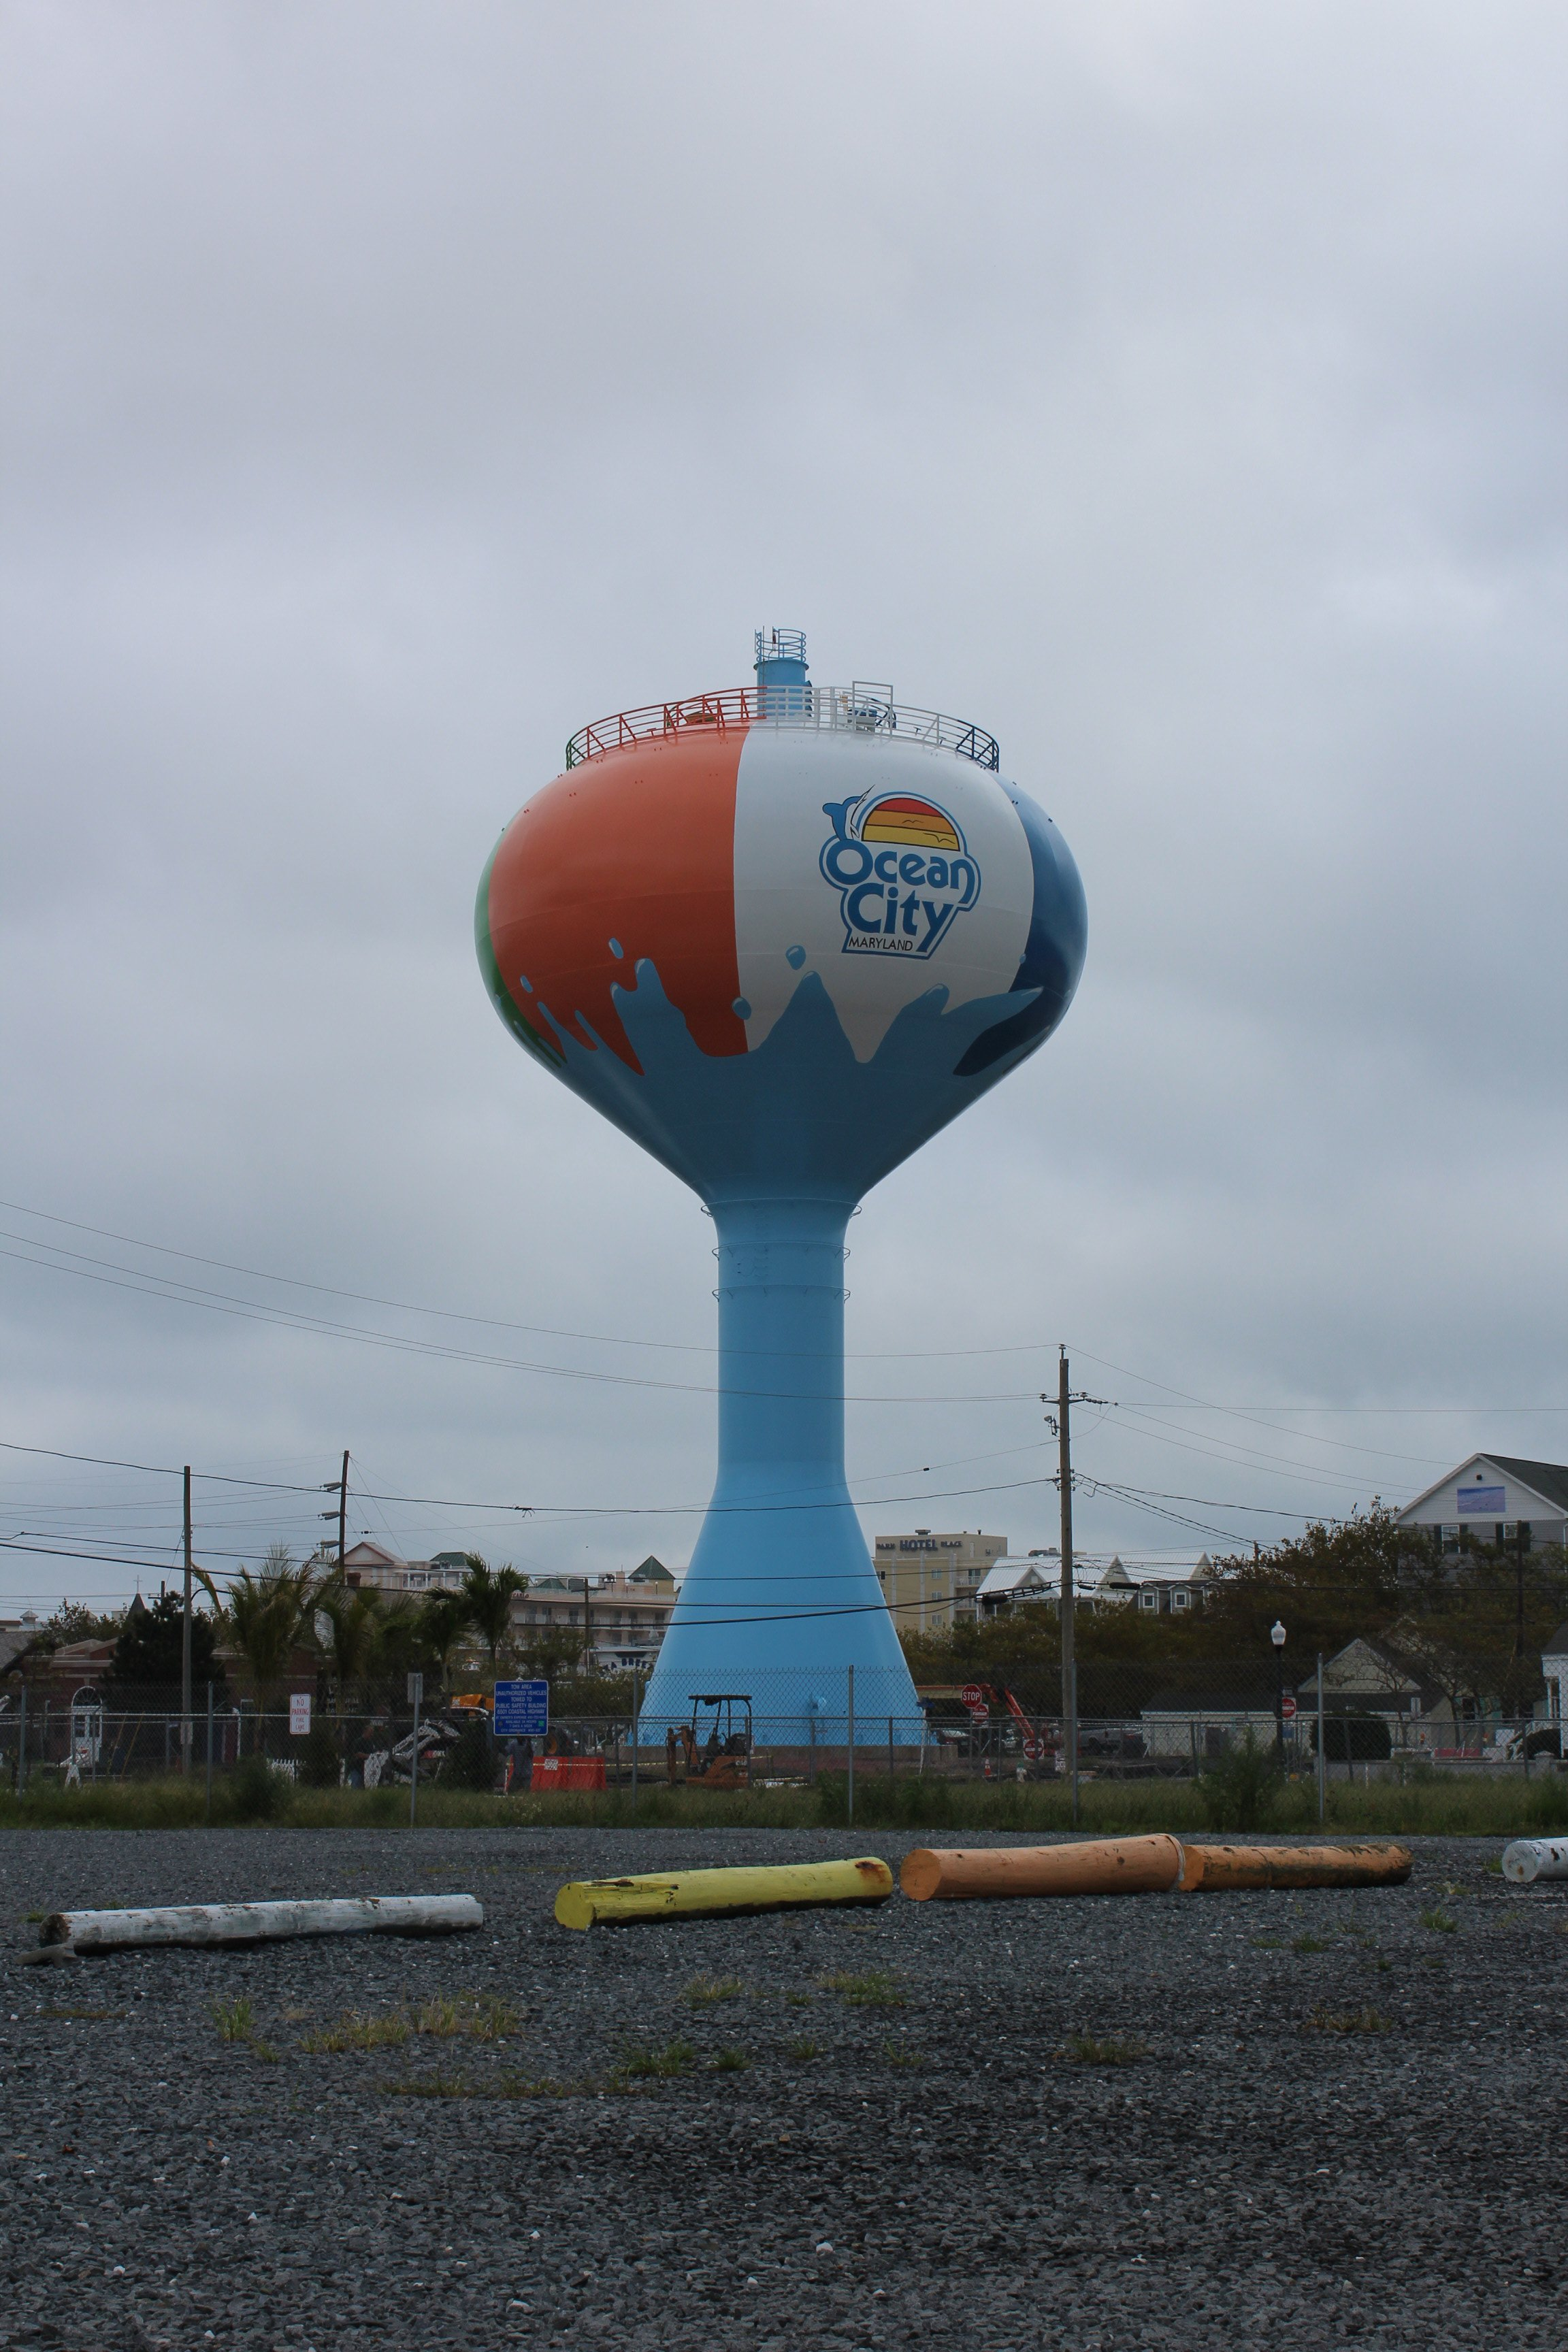 Ocean City S New Beach Ball Water Tower Shorebread